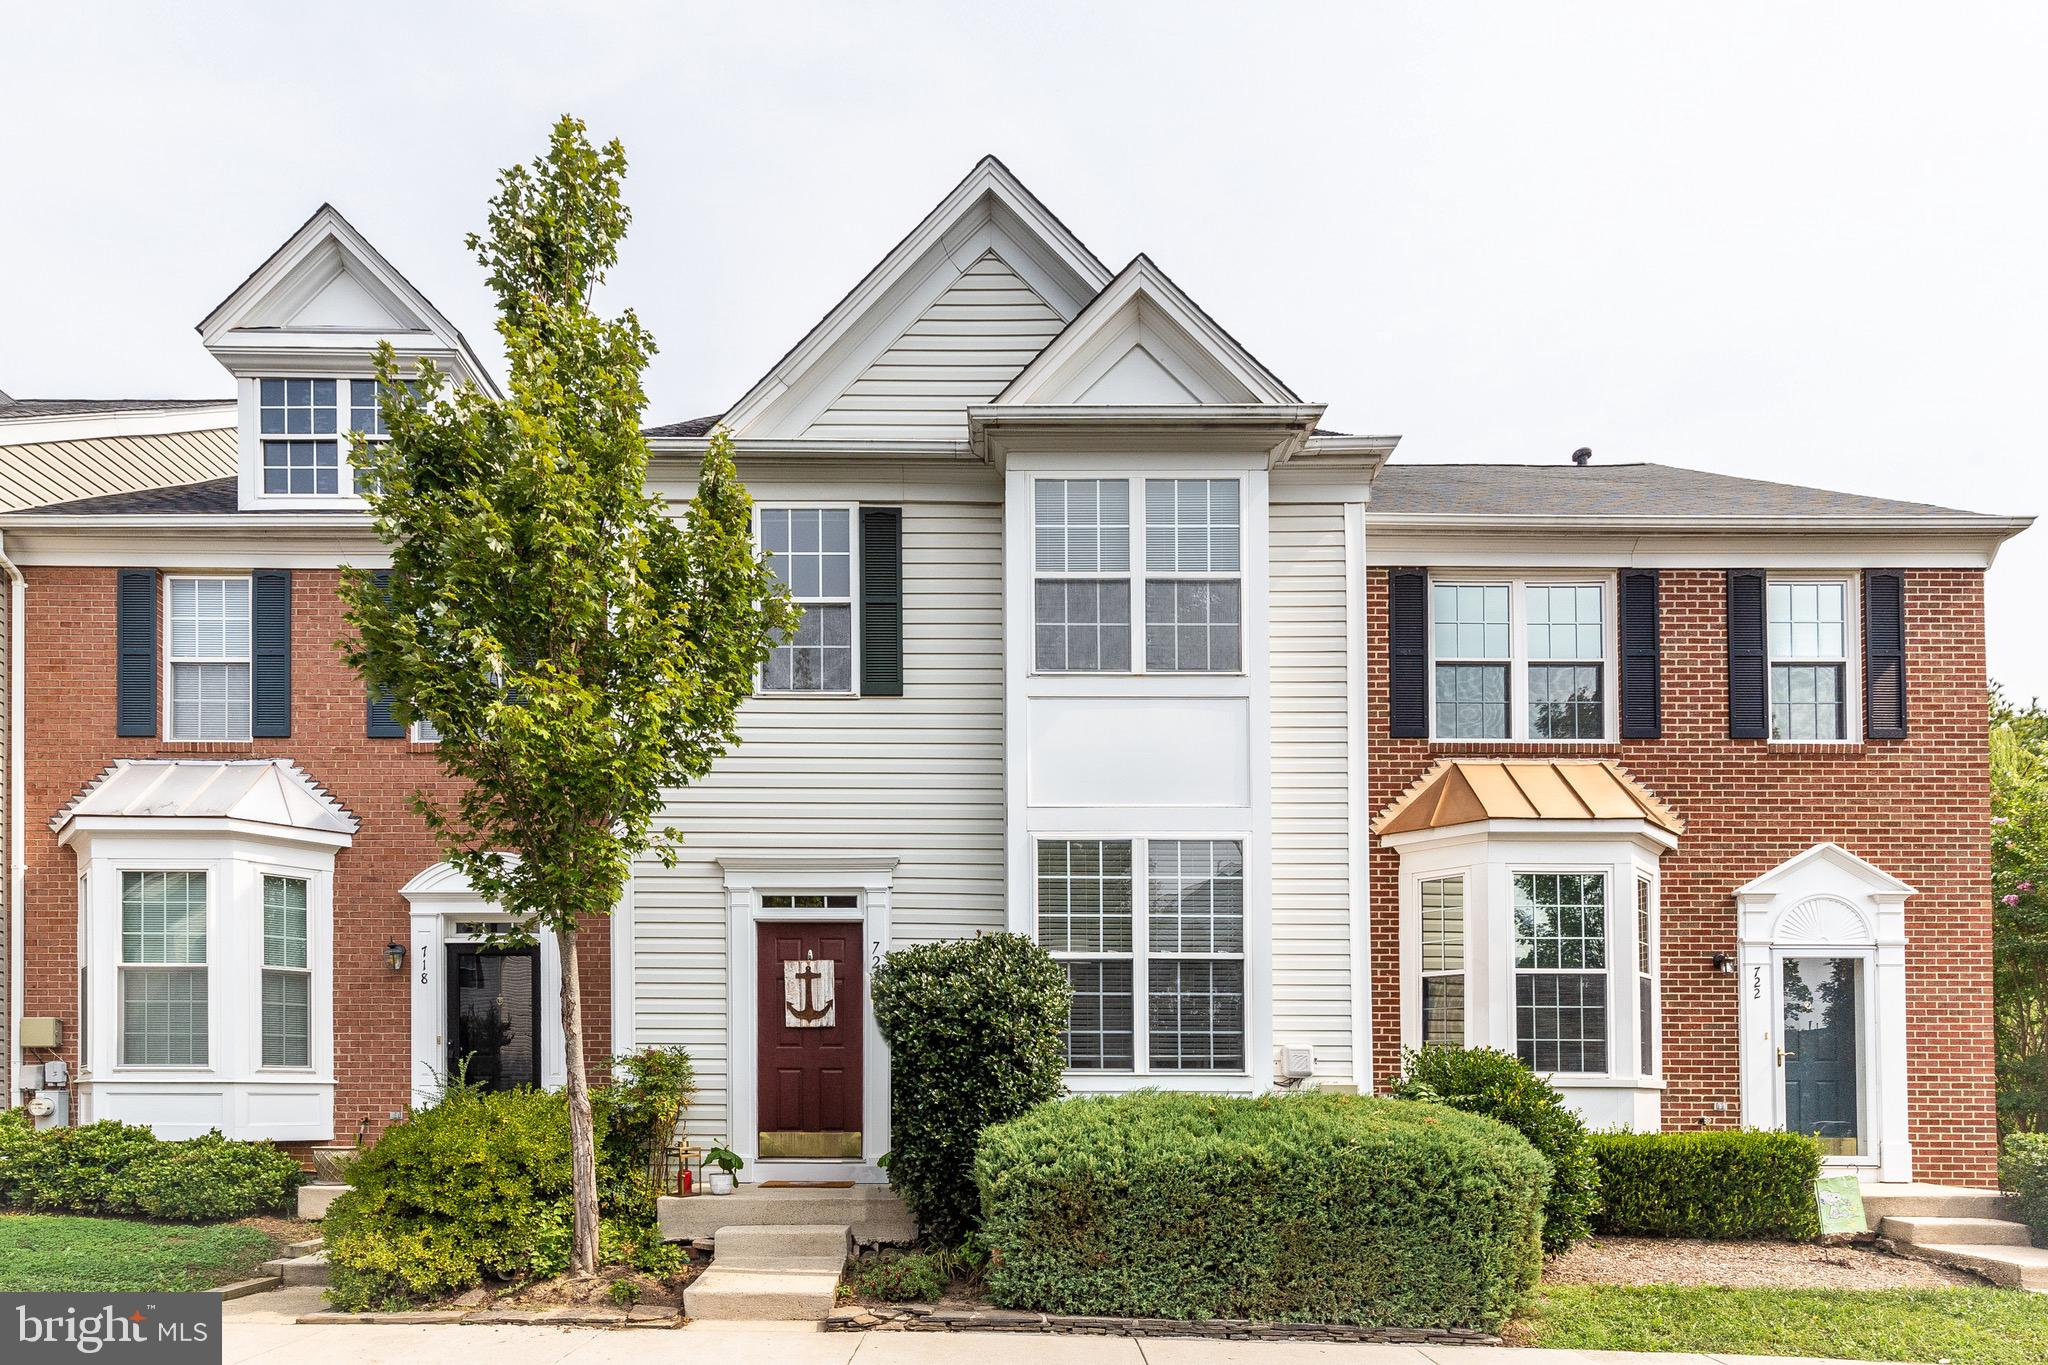 Great Location & Opportunity!  3-Level Fully Finished Townhome with desired Fenced-in Yard & easy access to RT 50/ 97.  This home features tons of natural light, easy maintenance, and a Lock & Leave lifestyle. Super convenient to Downtown Annapolis & Naval Academy Stadium.  New  Roof 2018!  Living Room features wall-to-wall carpet, eat-in kitchen, island with cabinet storage, ceiling fan, half bath & large deck (Painted 2021).  The Upper Level includes the Primary Bedroom with ceiling fan, vaulted ceiling, modern white/grey large tiled bathroom that was recently remodeled, and two additional bedrooms and another full bath. Fully finished lower level with private entrance to outdoor patio, recreation/ entertainment room featuring wall-to-wall carpet, Natural Gas Fireplace w/ pretty surround, half bath, laundry room & storage area. Additional community green space,  walk-paths, tot lots & playgrounds.